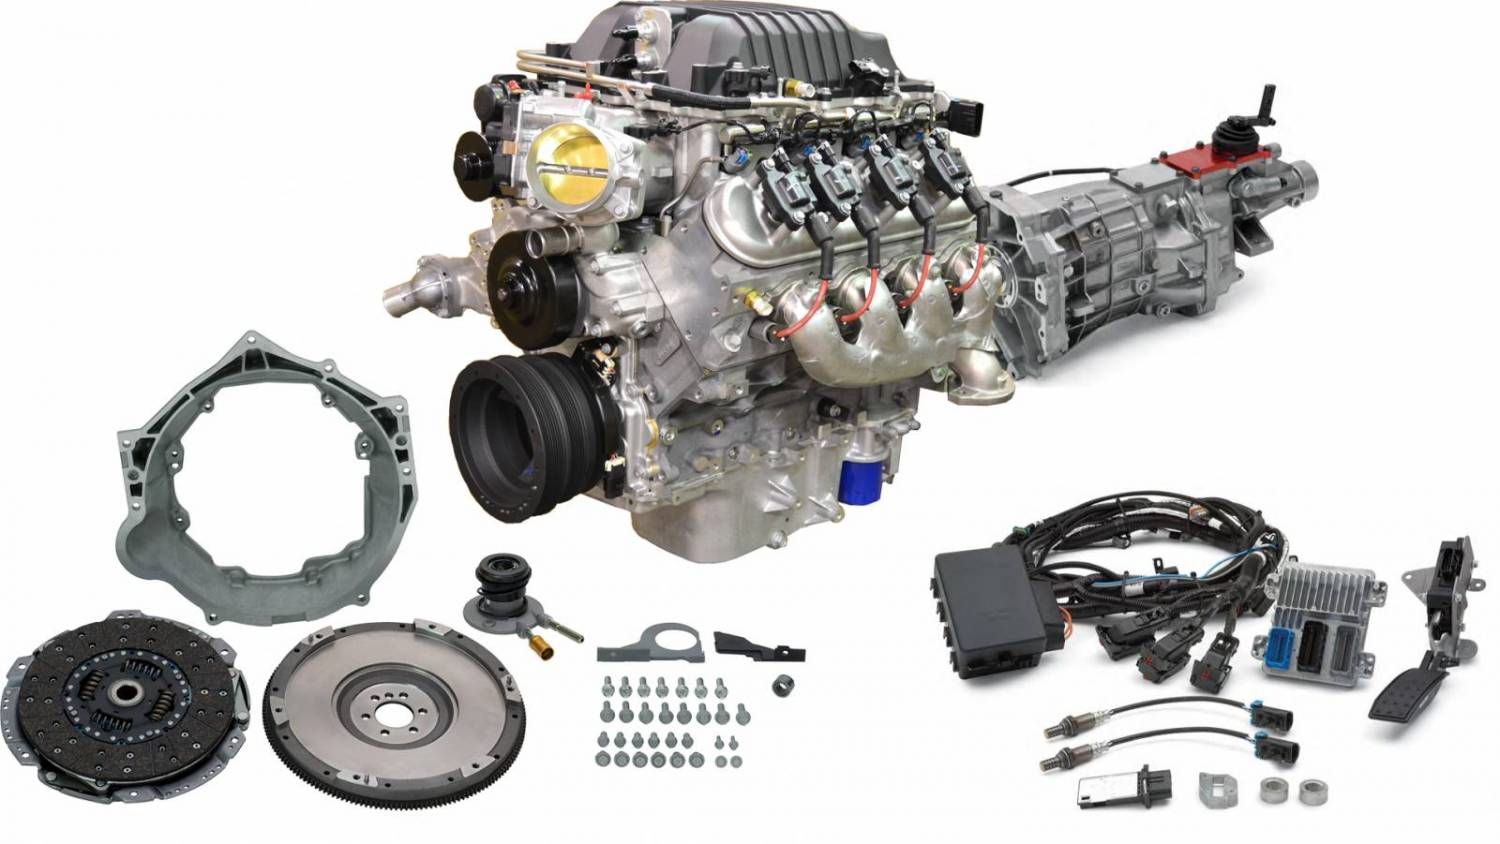 Chevrolet Performance Parts Cpslsat56 Lsa 6 2l Supercharged Engine With T56 Sd 750 00 Rebate